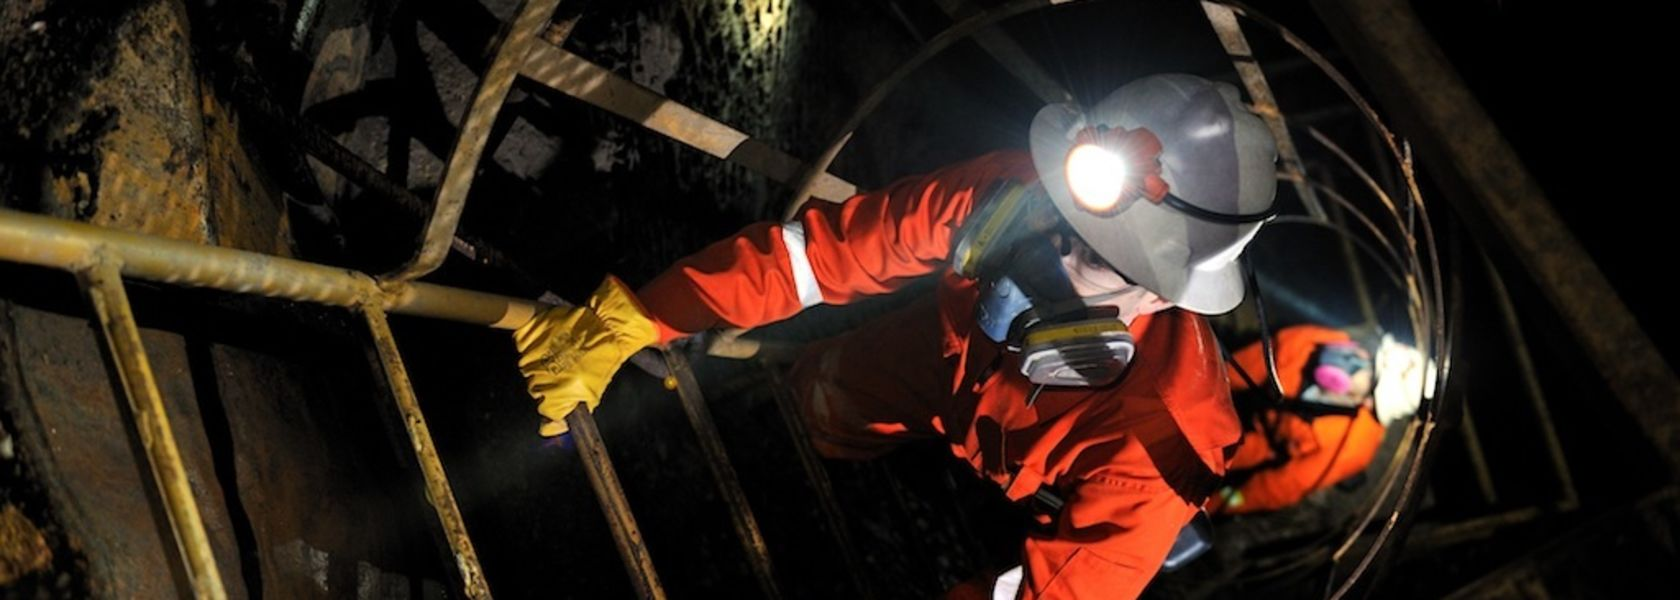 AngloGold suspends Argentina mine due to COVID-19 cases